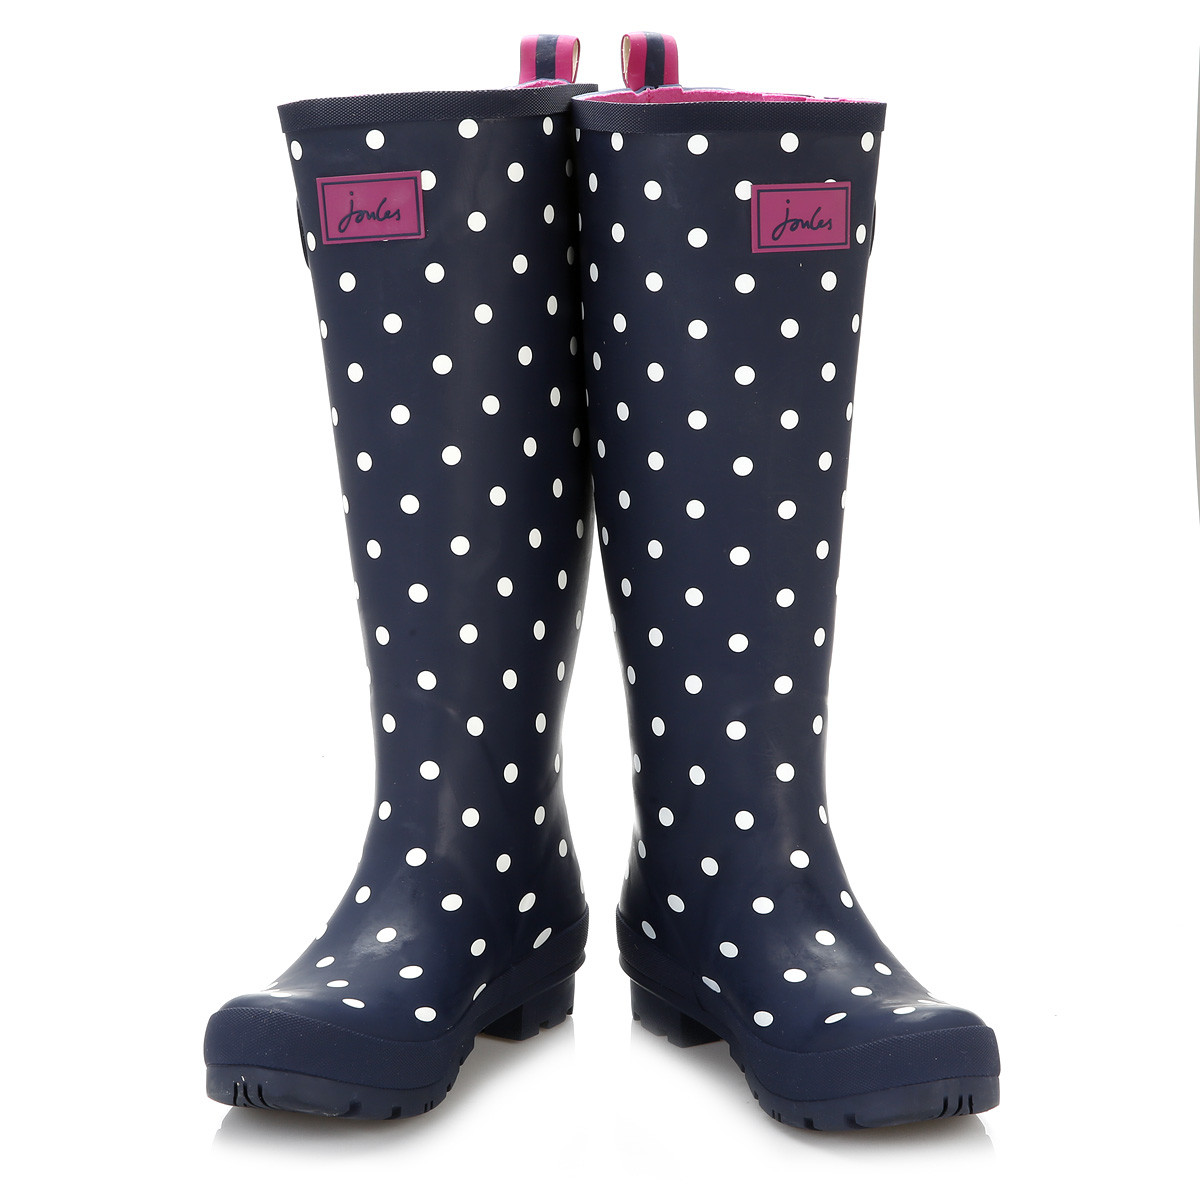 ceramic cowboy boot vase of joules womens wellies wellington boots rubber shoes various with regard to joules womens wellies wellington boots rubber shoes various